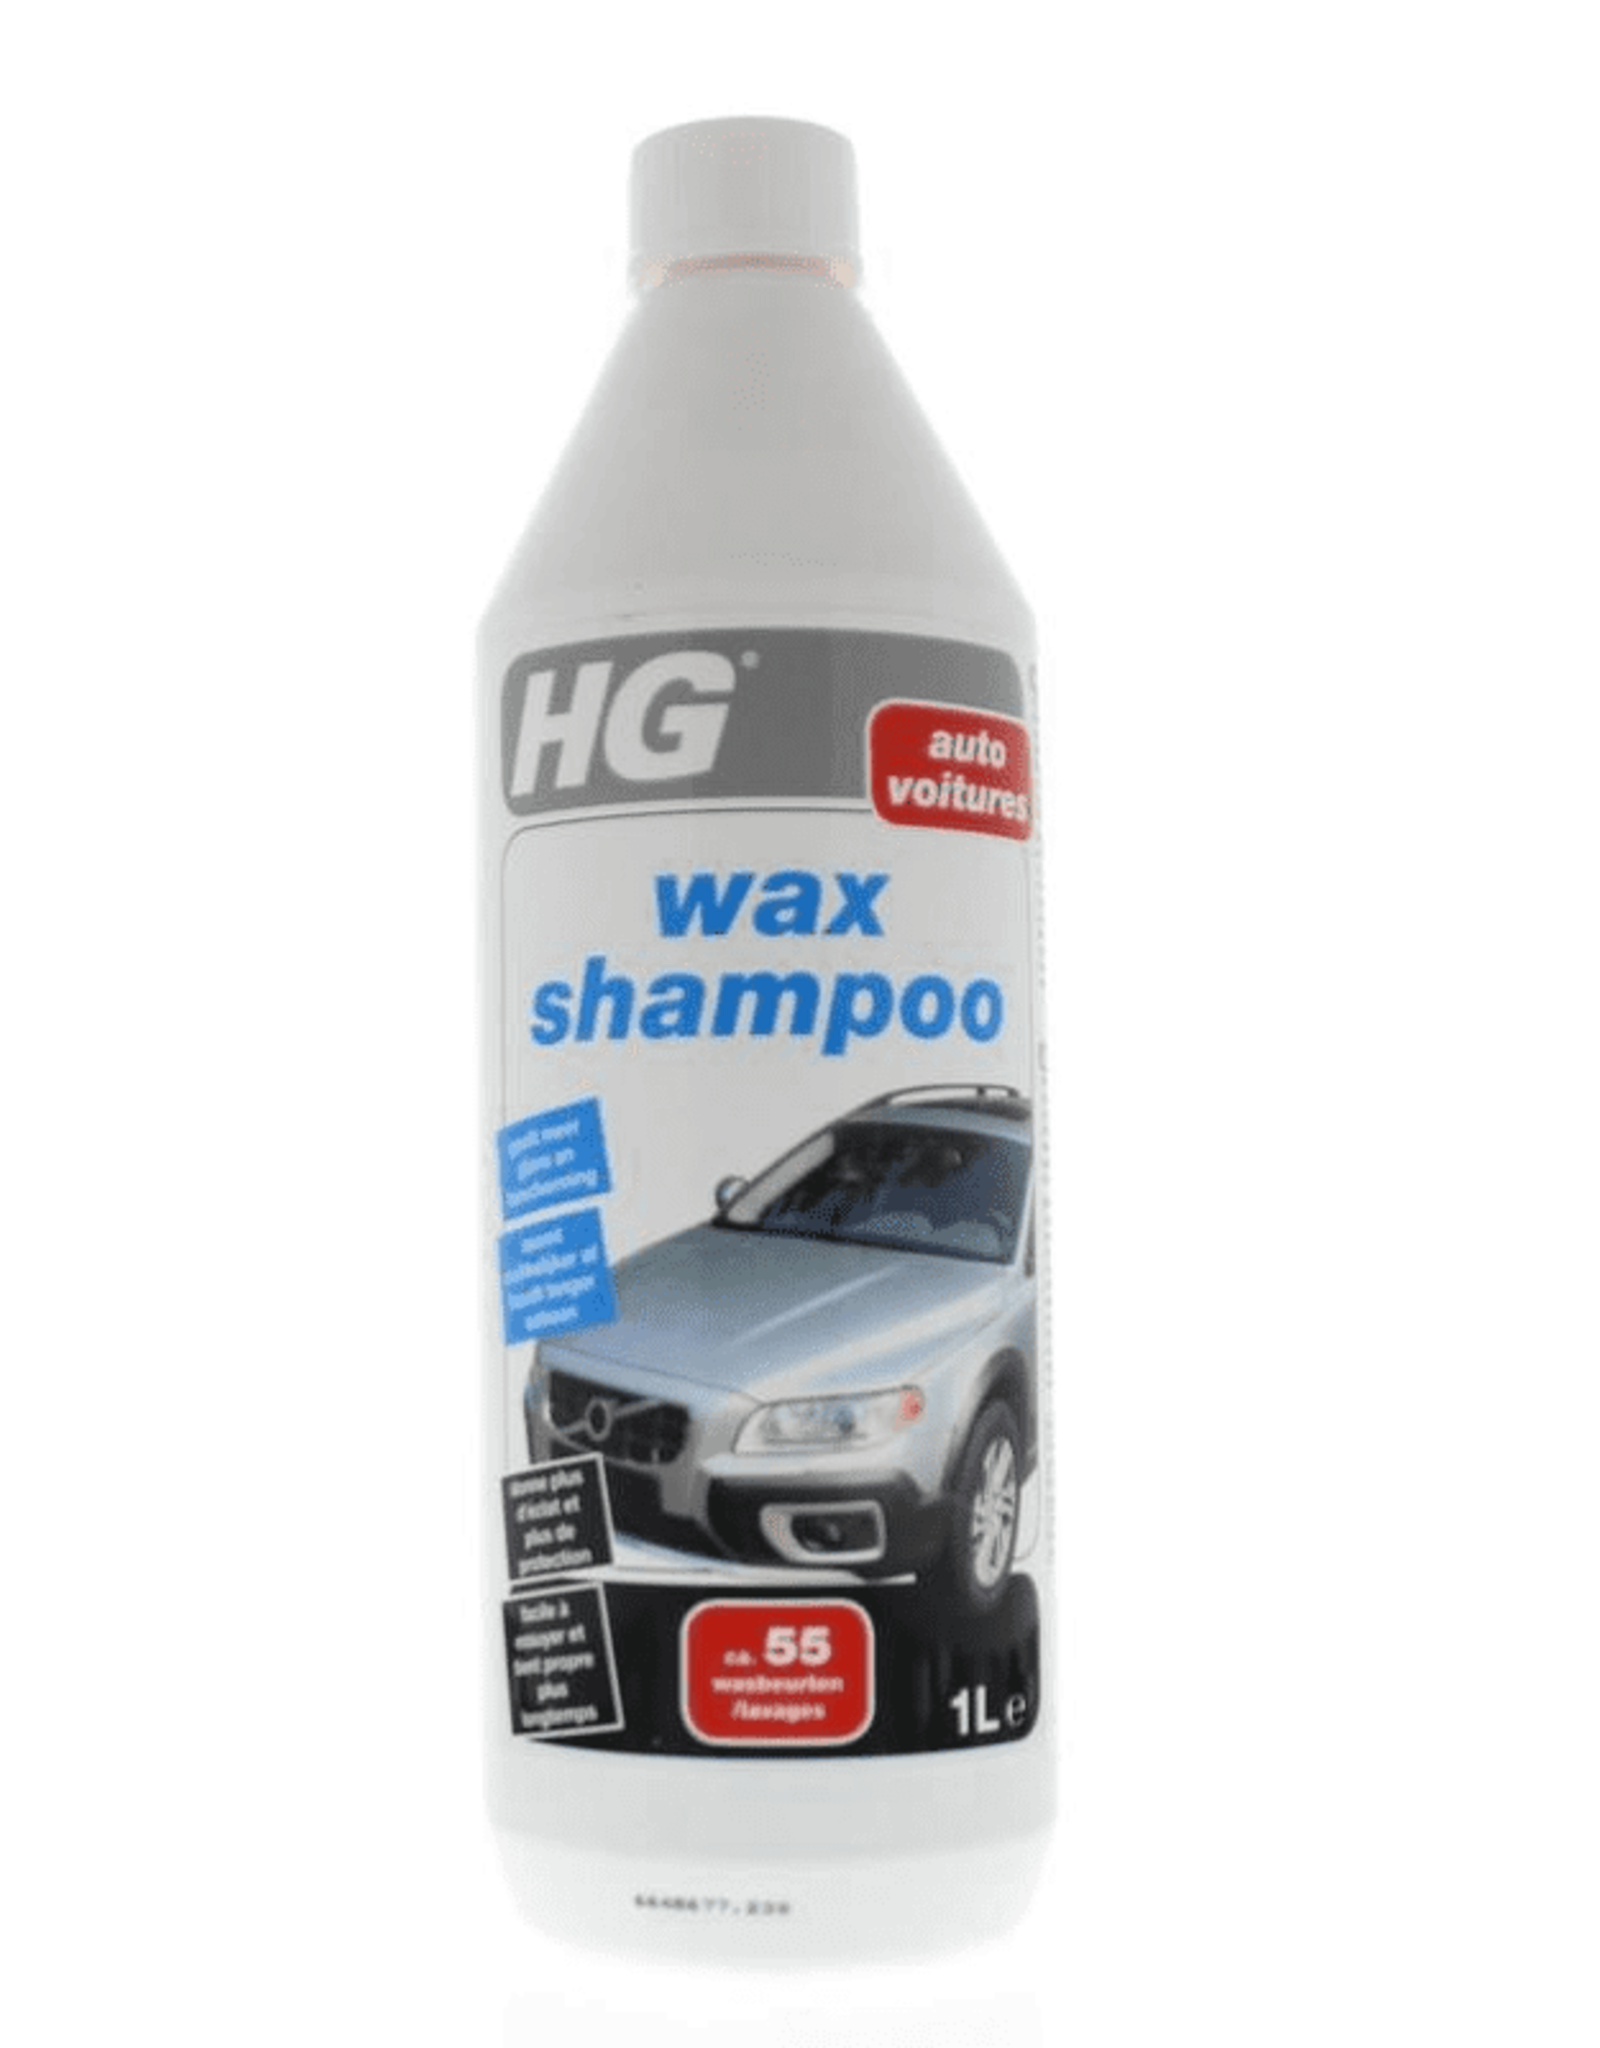 HG HG Car wax shampoo